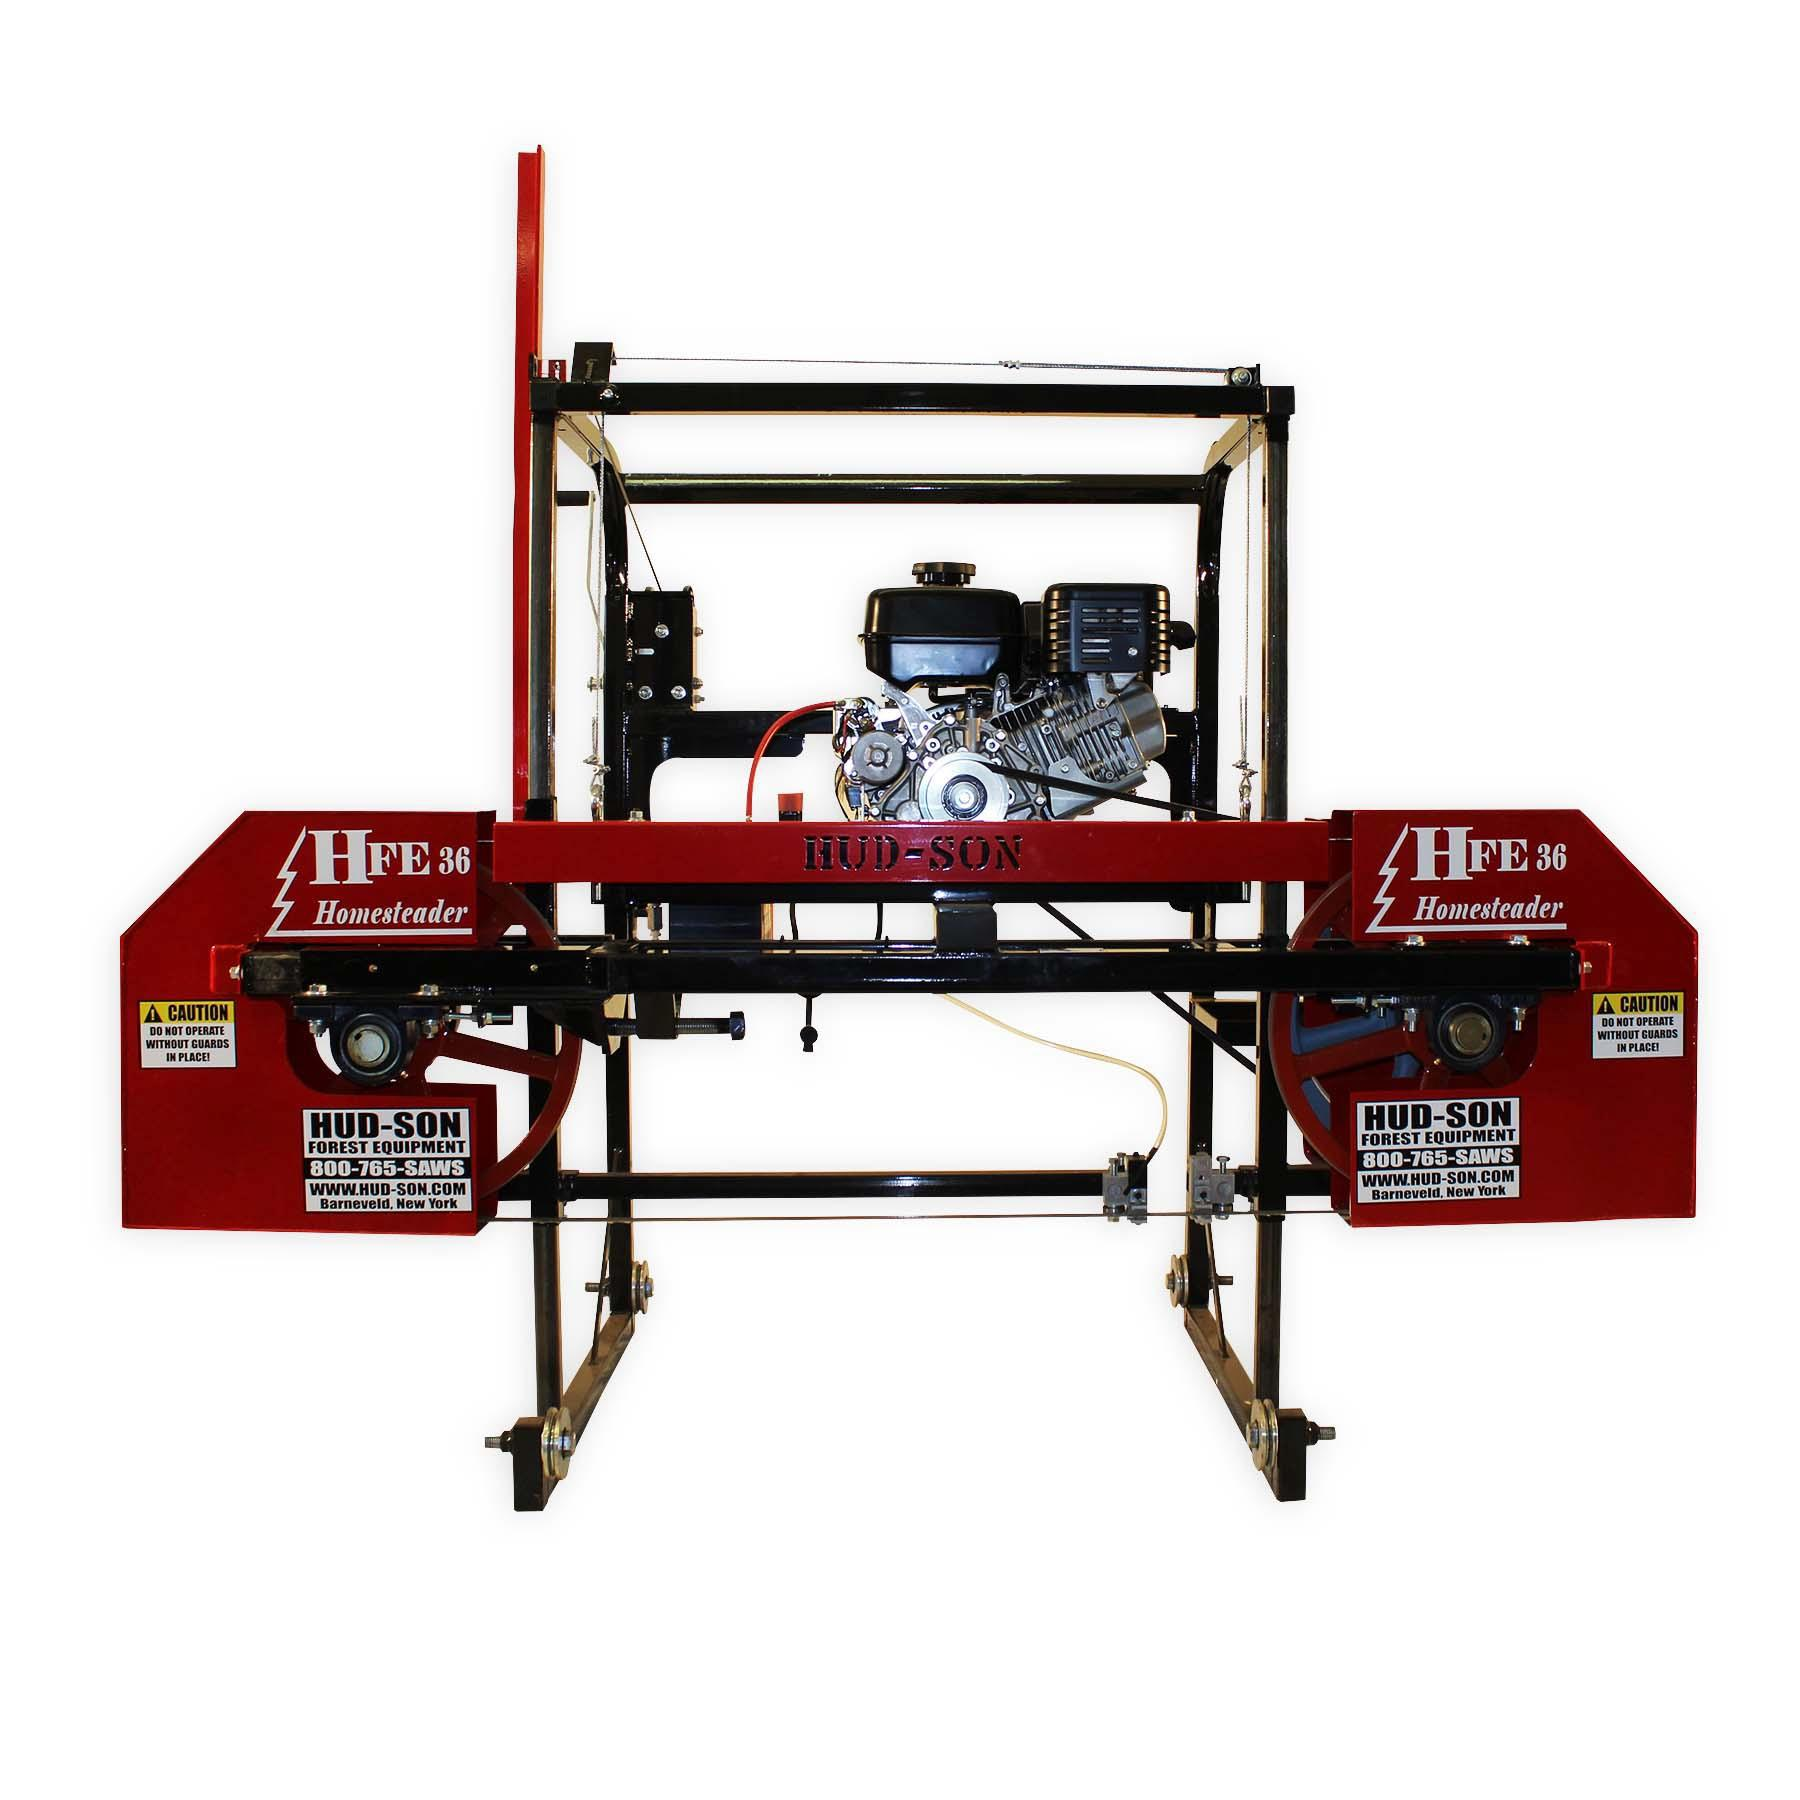 HFE-36 Homesteader Portable Sawmill